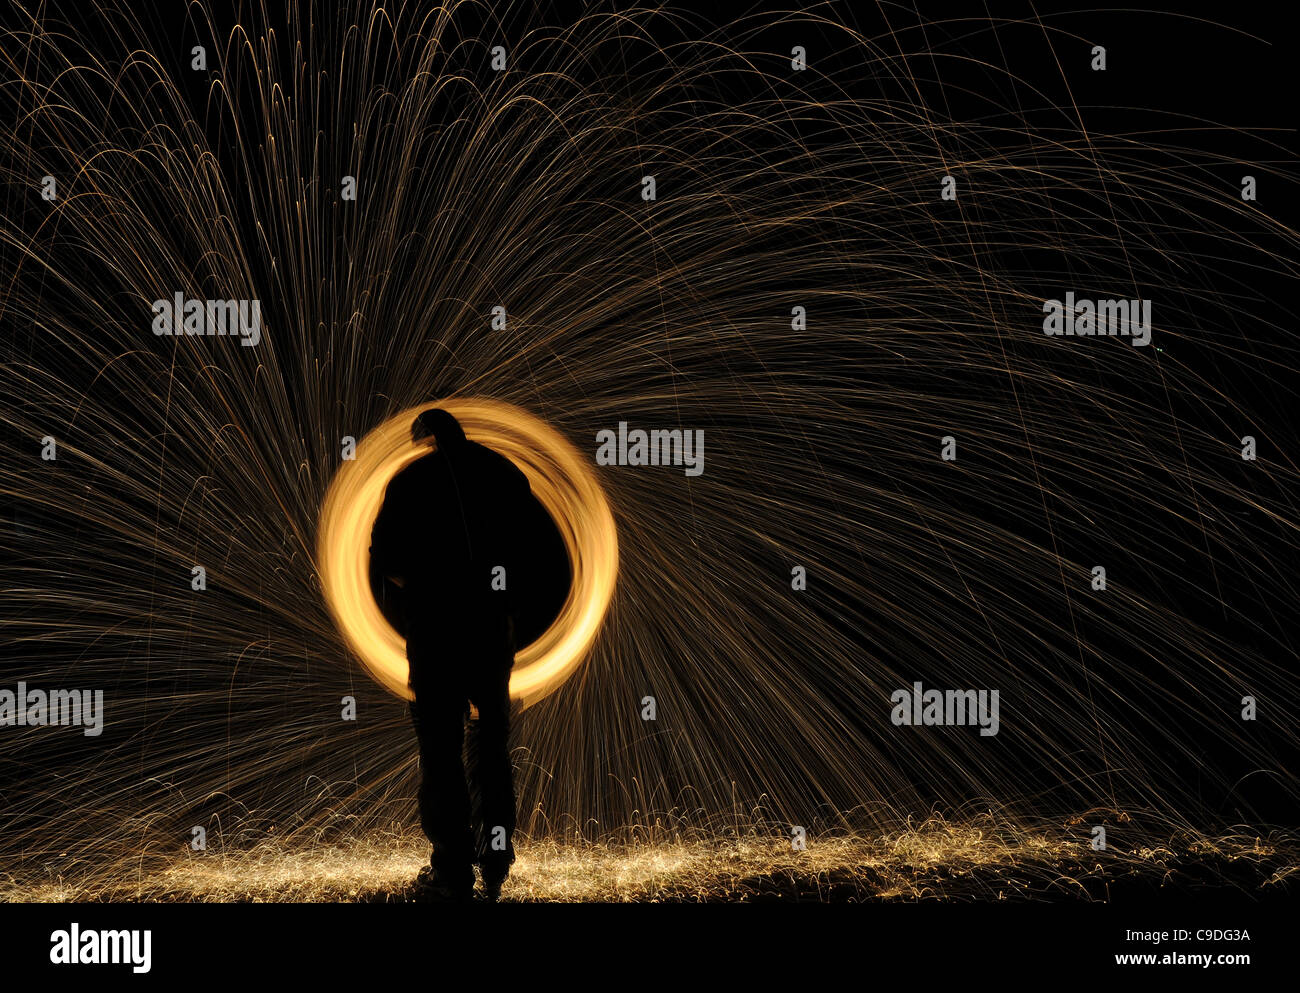 glowing spark spiral - Stock Image